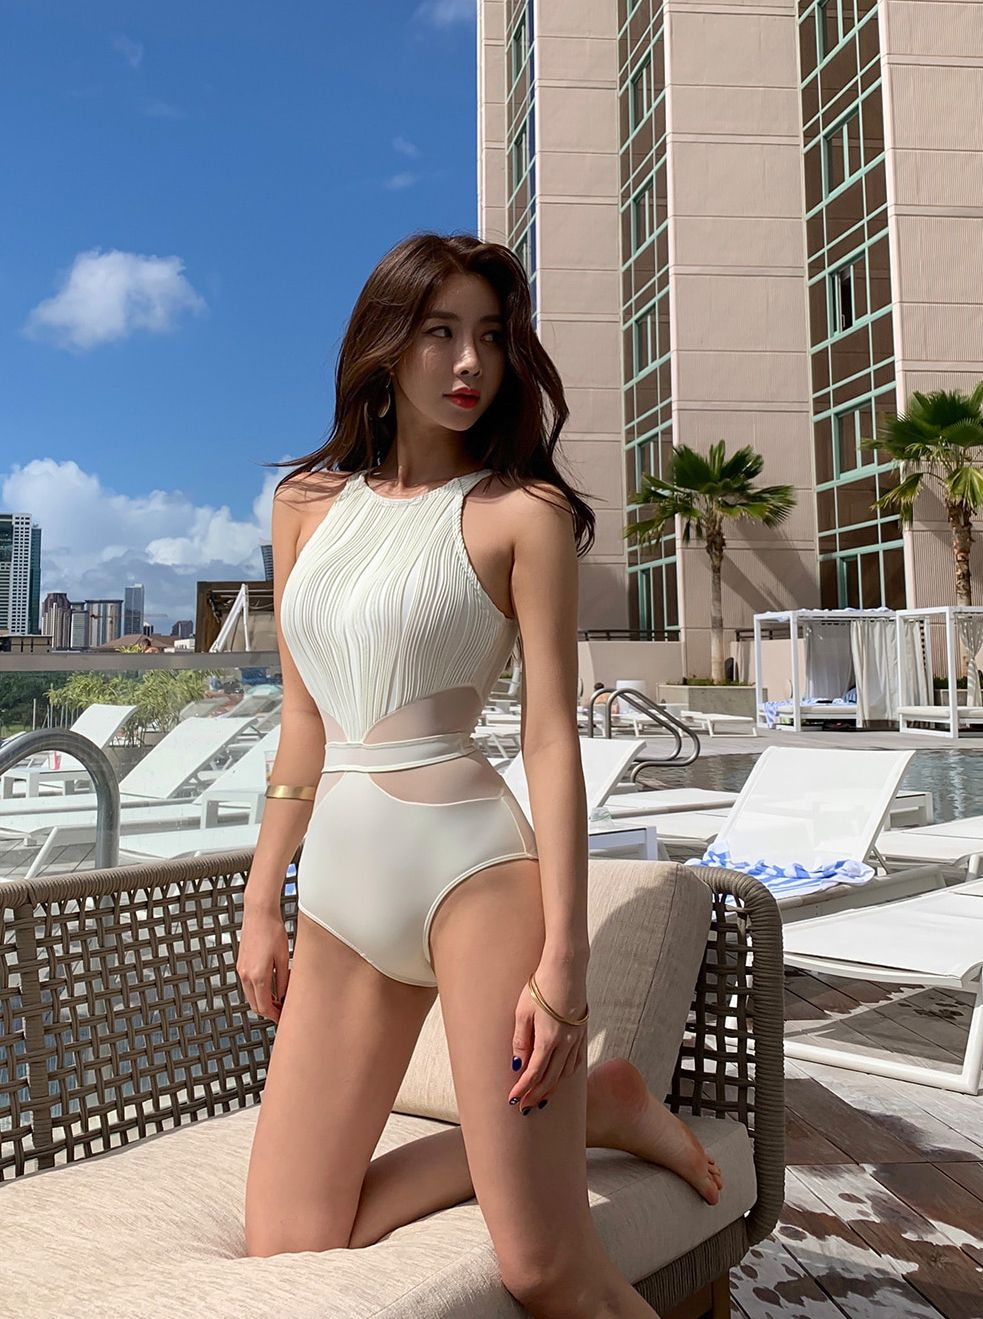 Kwon Byul (191212) White Monokini Swimsuit Set - TruePic.net